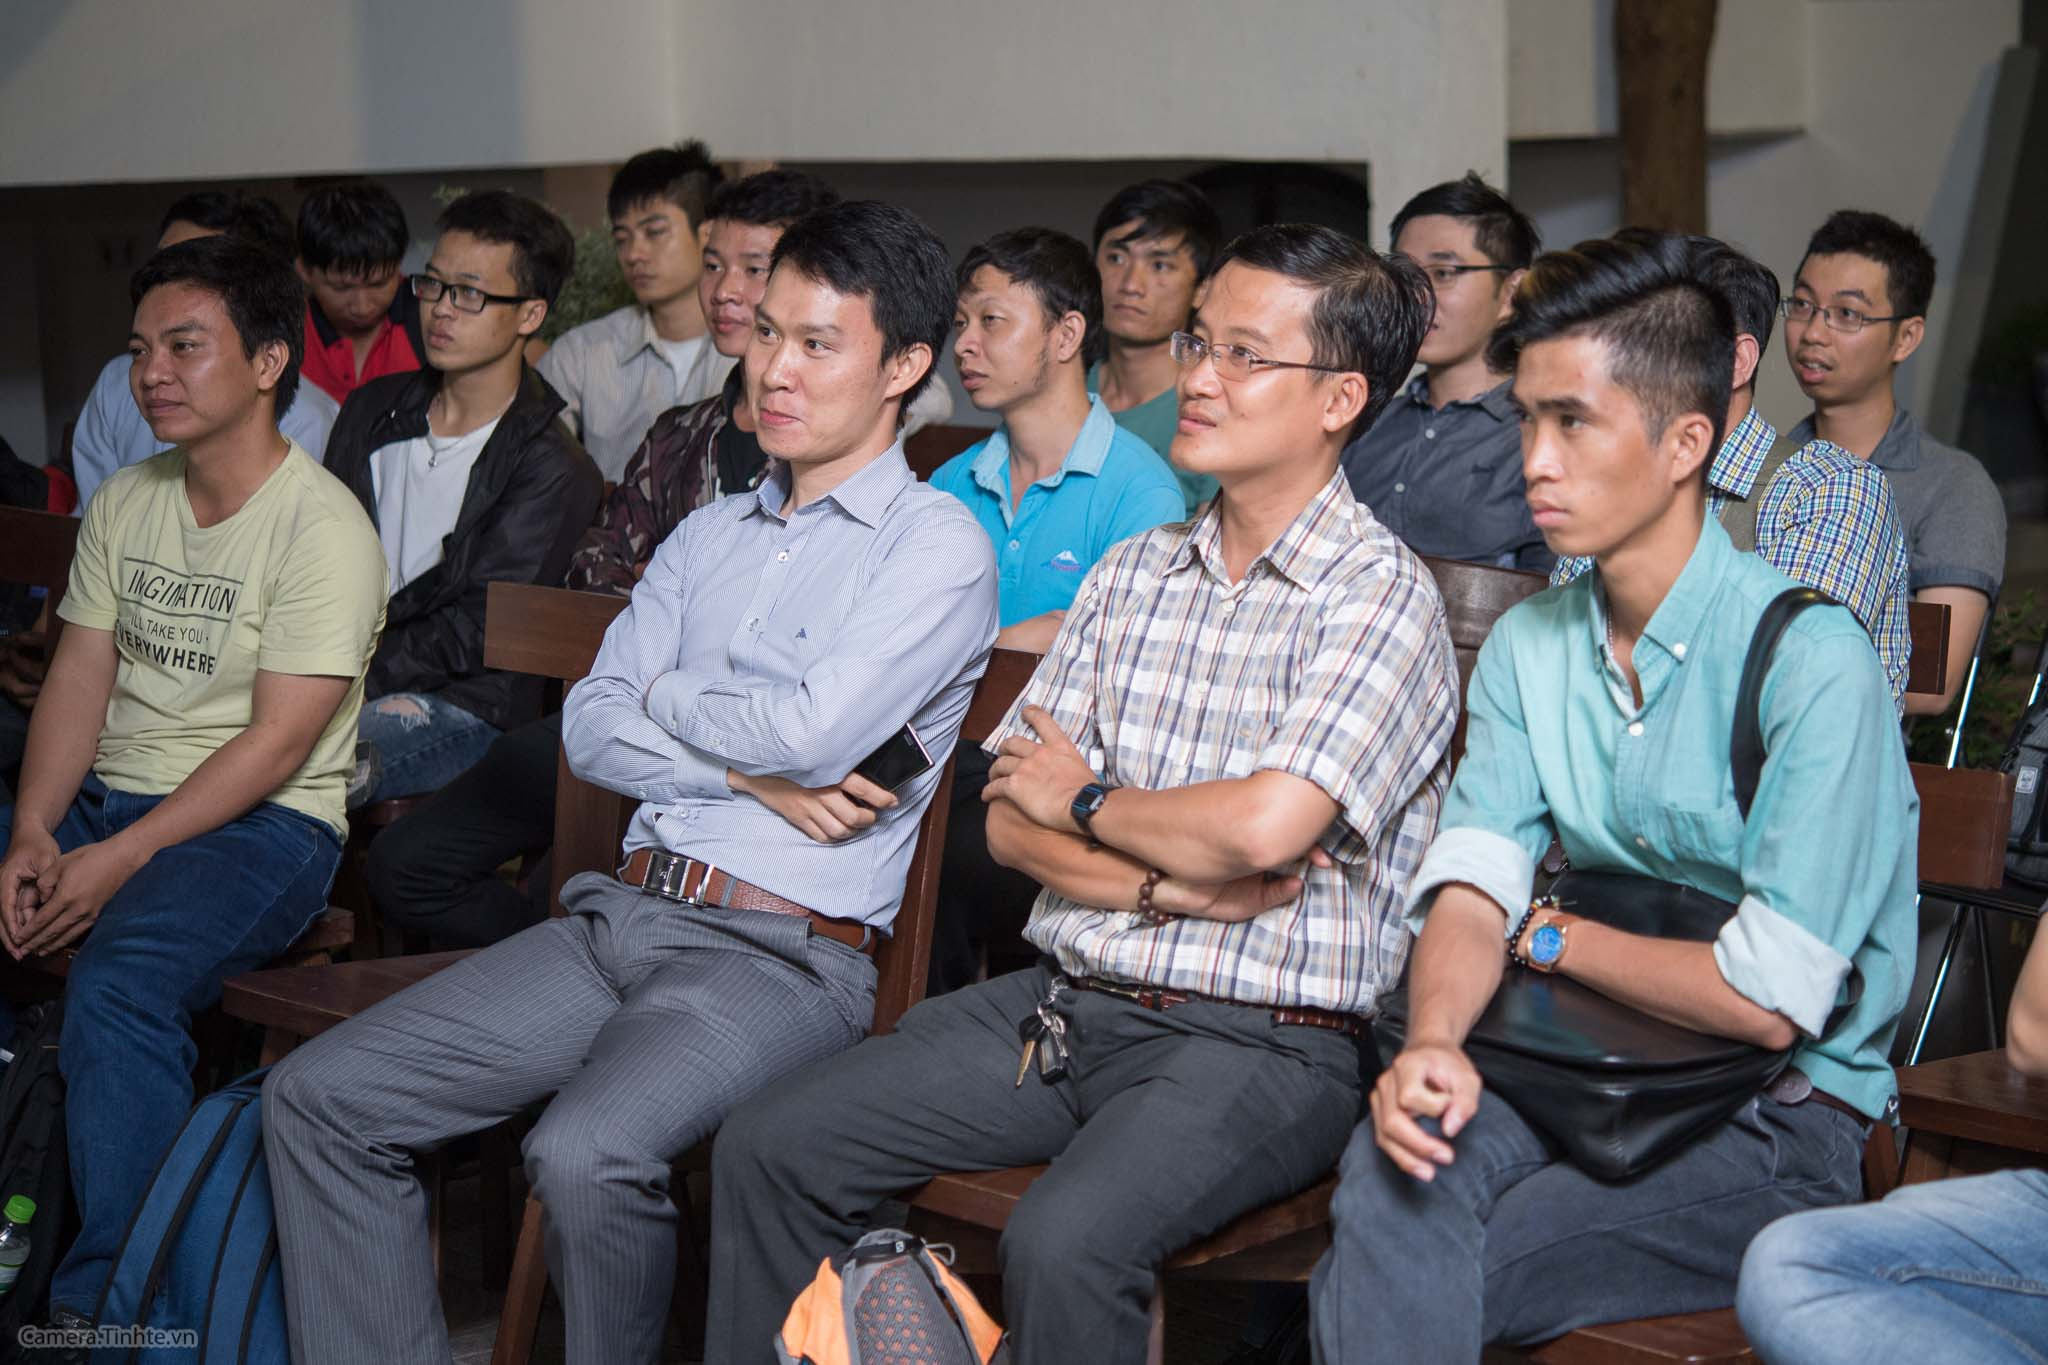 Workshop chup anh the thao - Camera.tinhte.vn-4.jpg